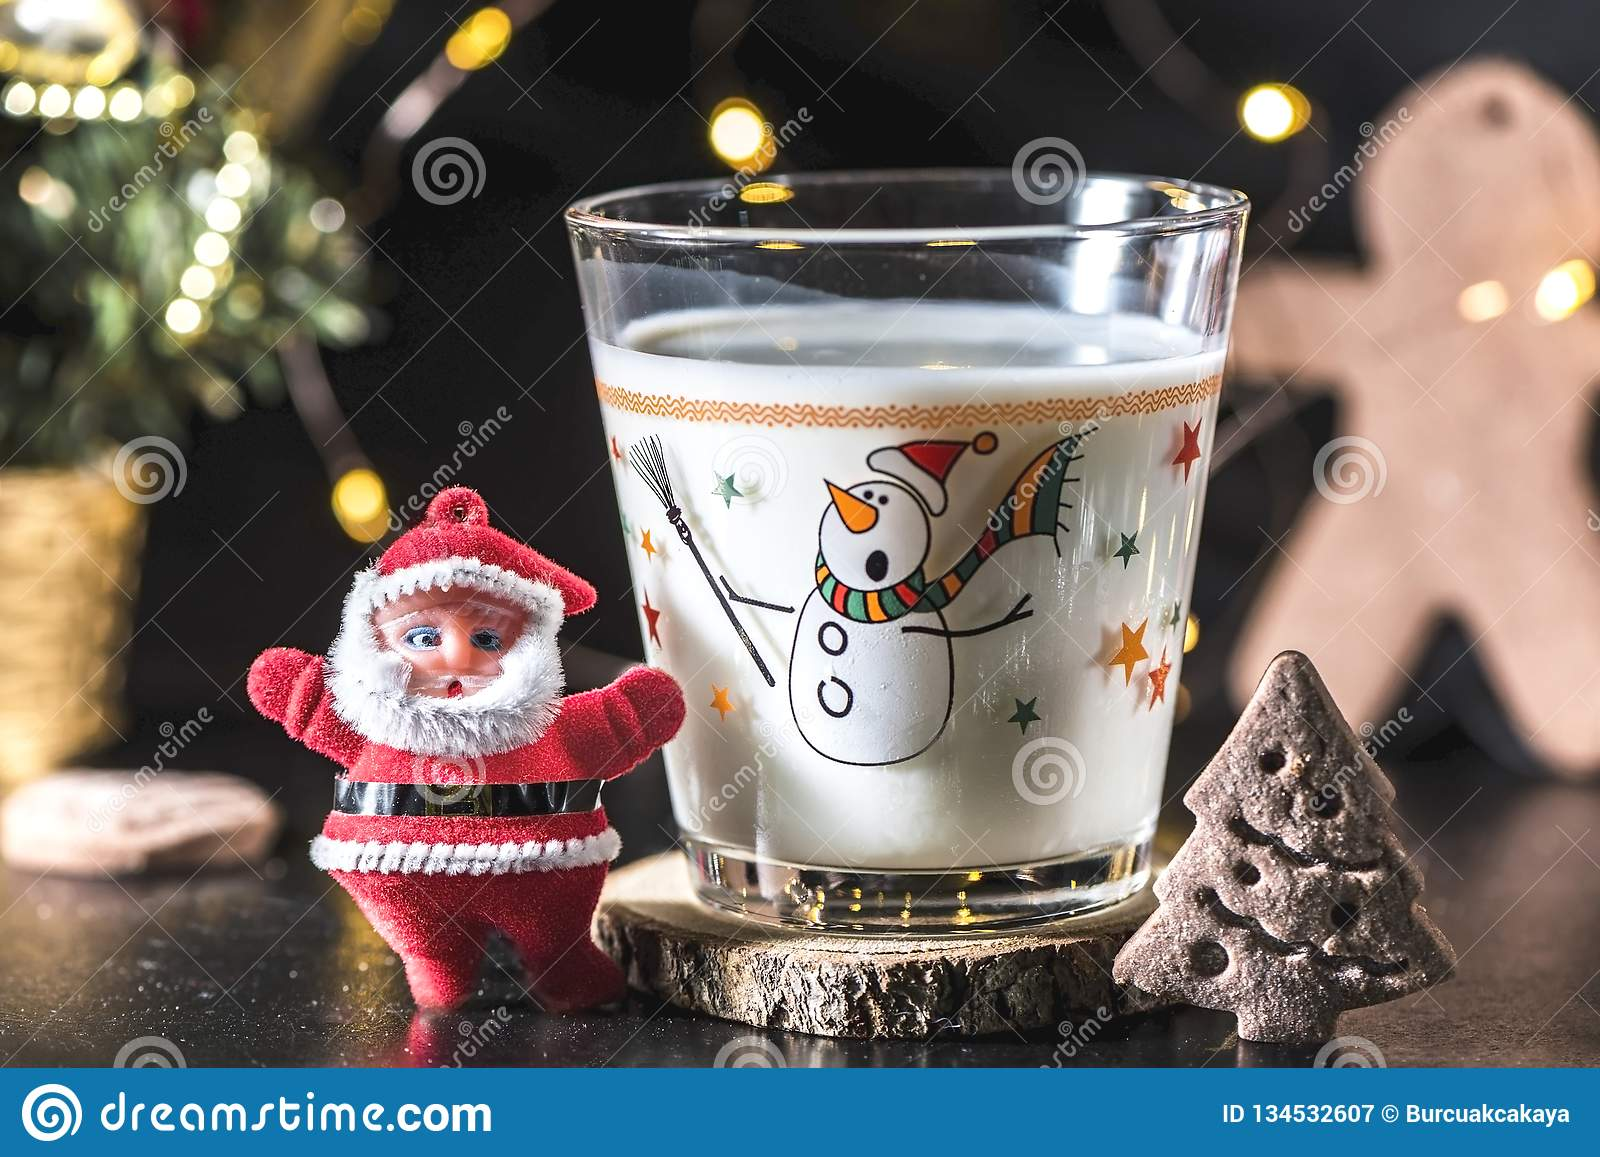 Christmas tree shaped cookie and a glass of milk for Santa Claus, close up, indoor. Holiday concept